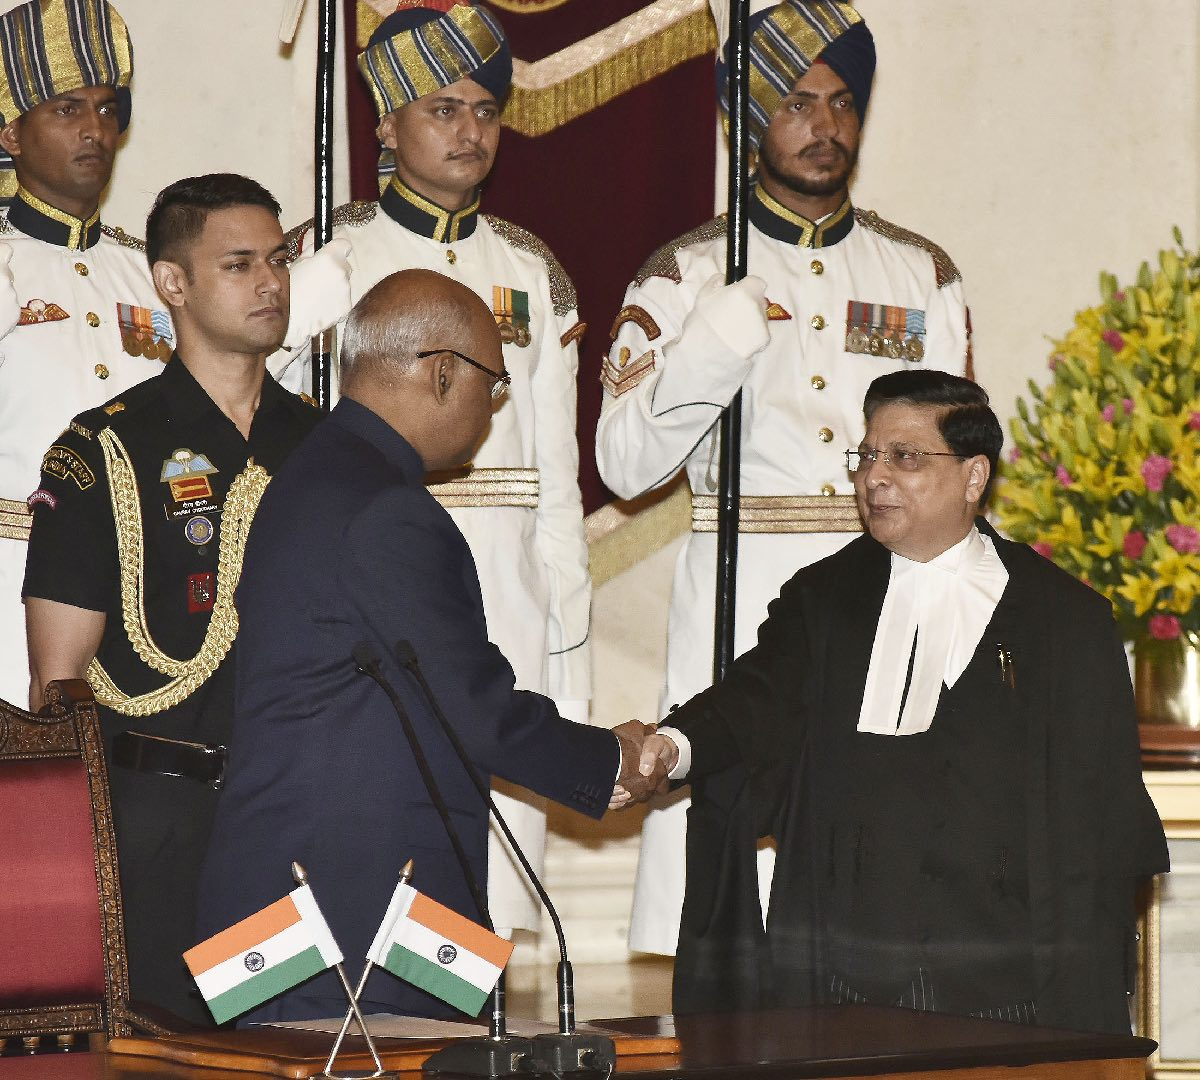 Justice Dipak Misra being sworn in as the chief justice of India. Image: PIB